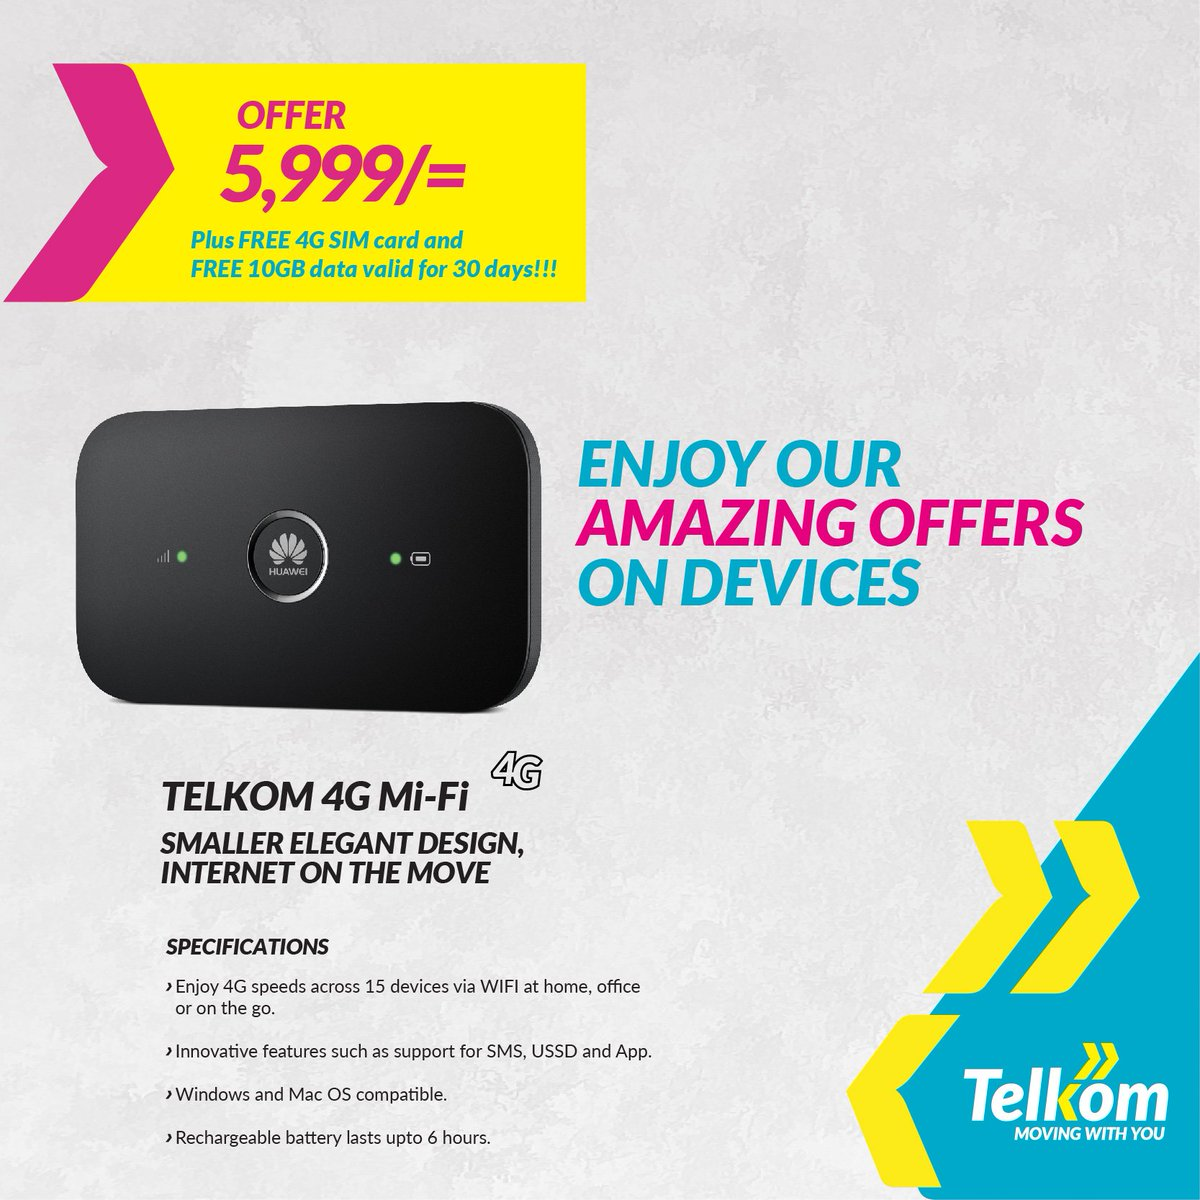 Telkom Kenya on Twitter: